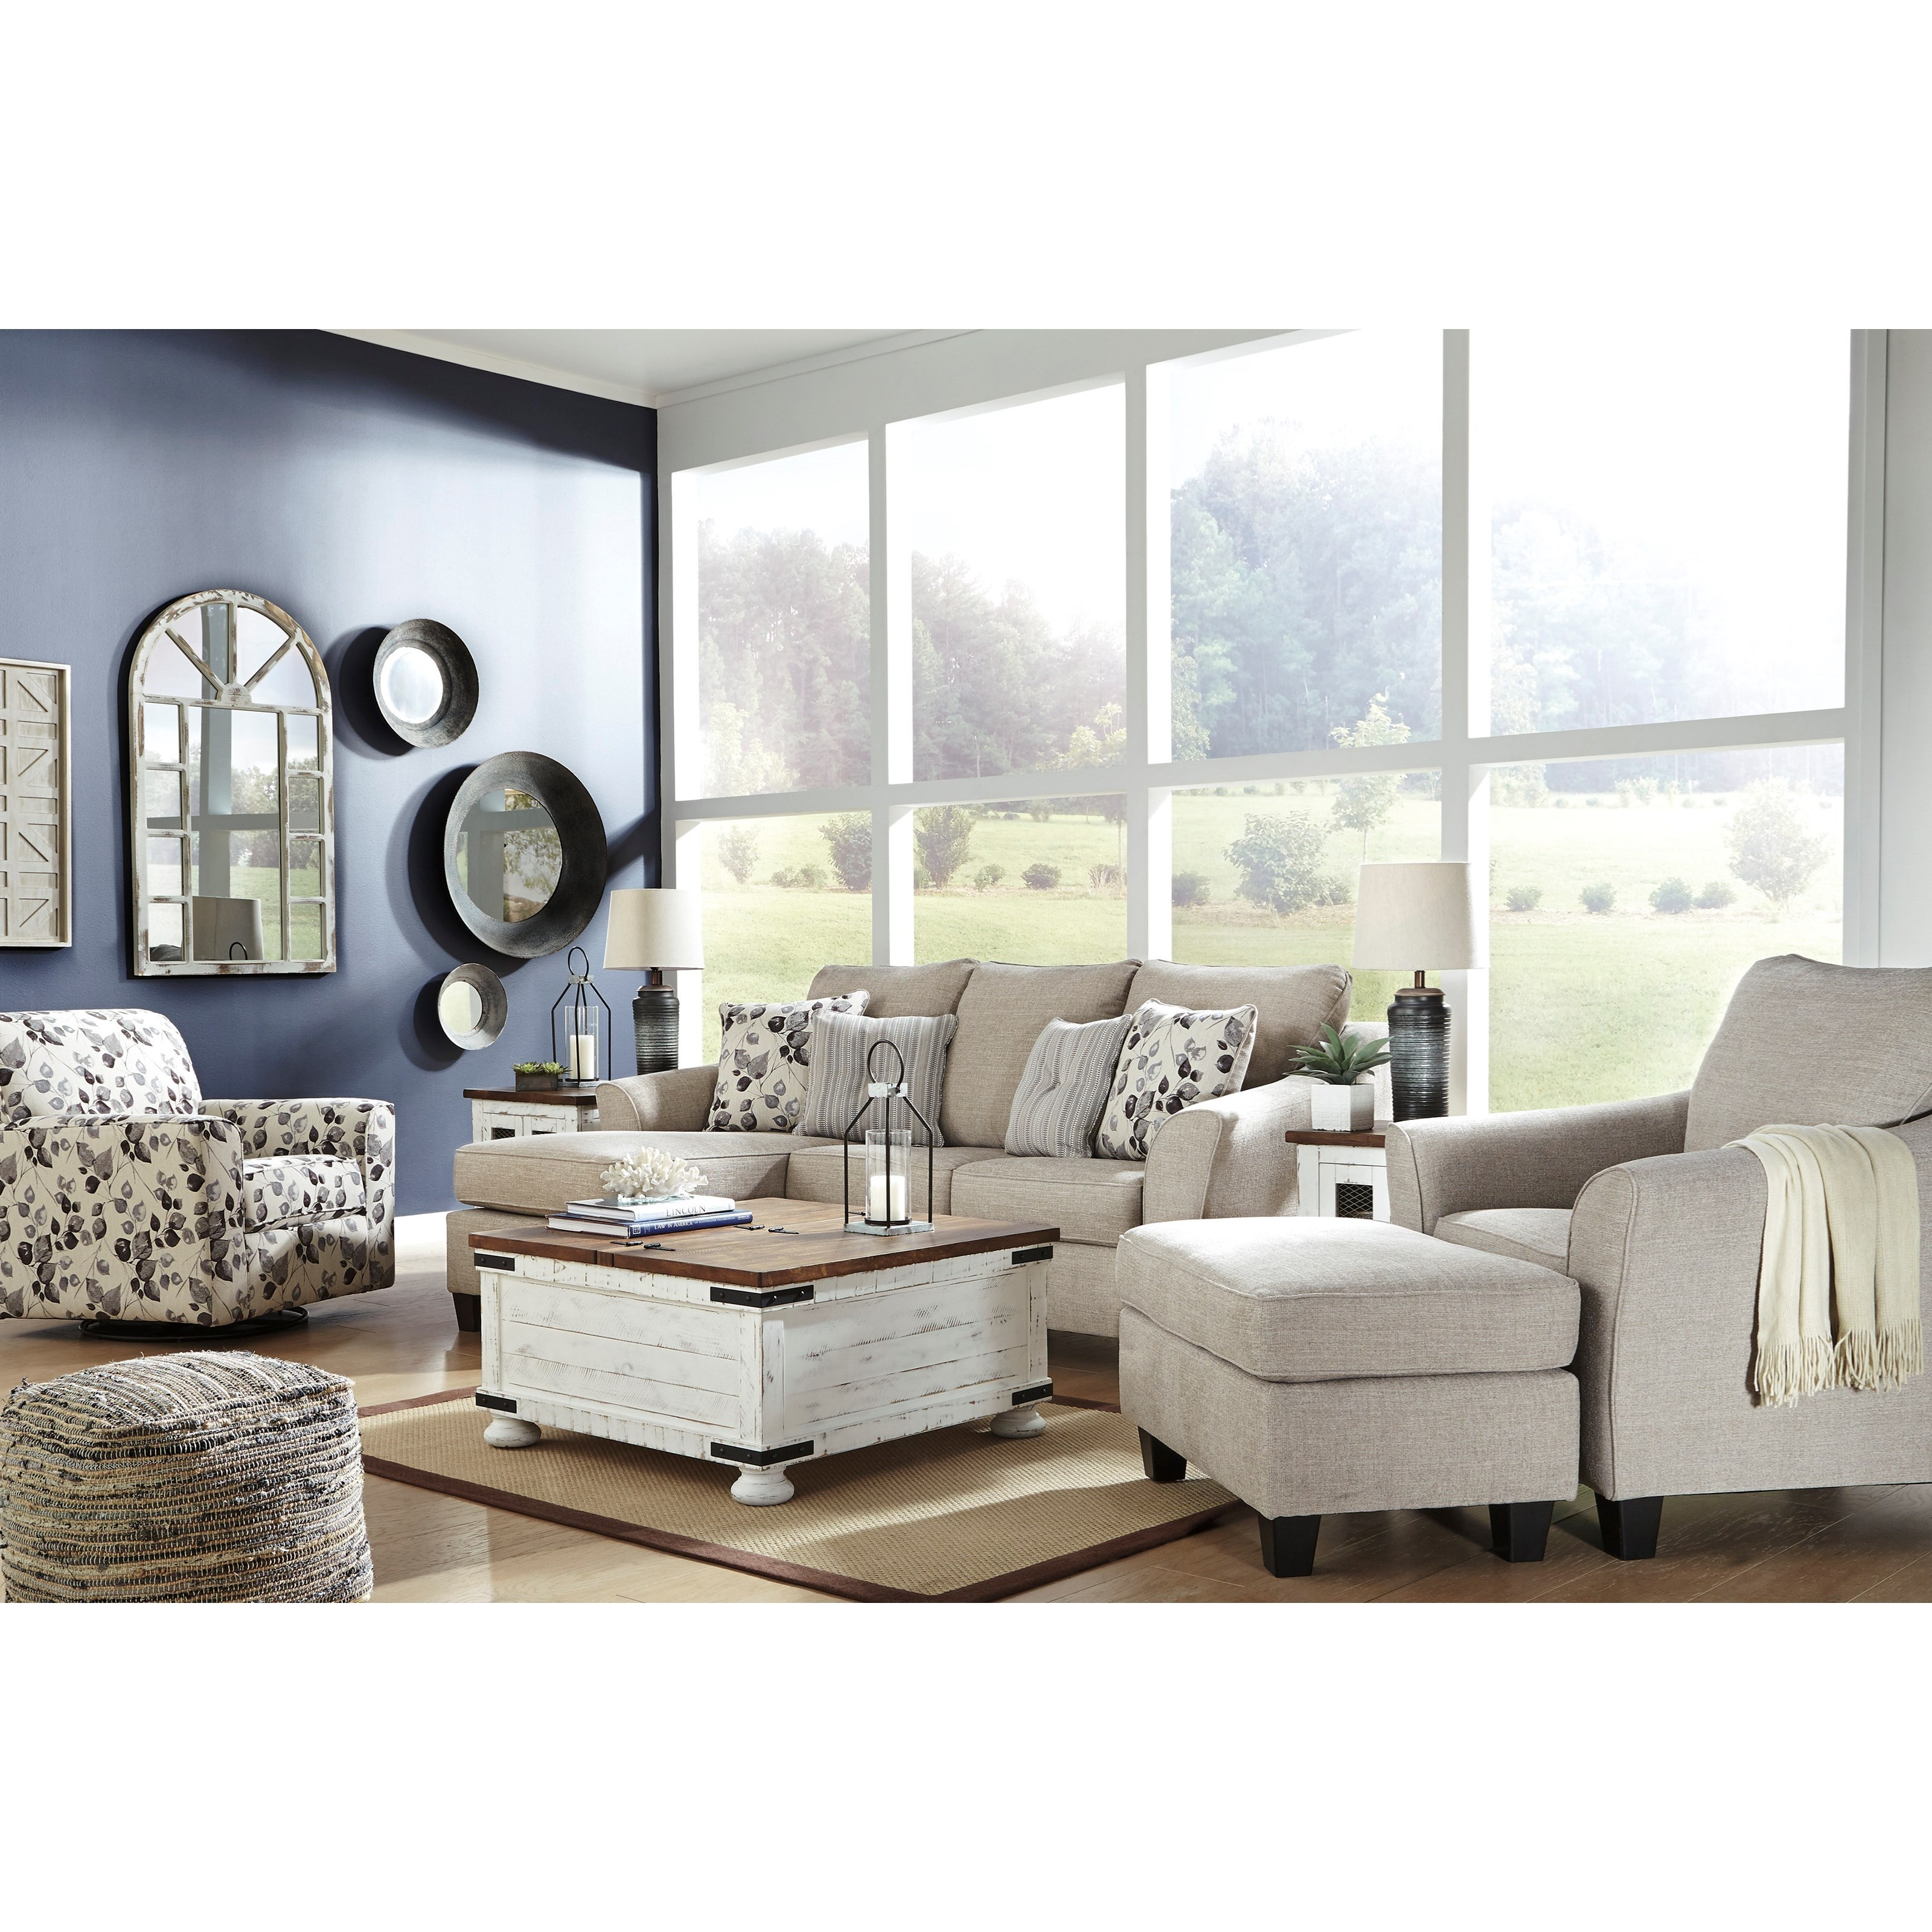 Abney Stationary Living Room Group by Benchcraft at Catalog Outlet